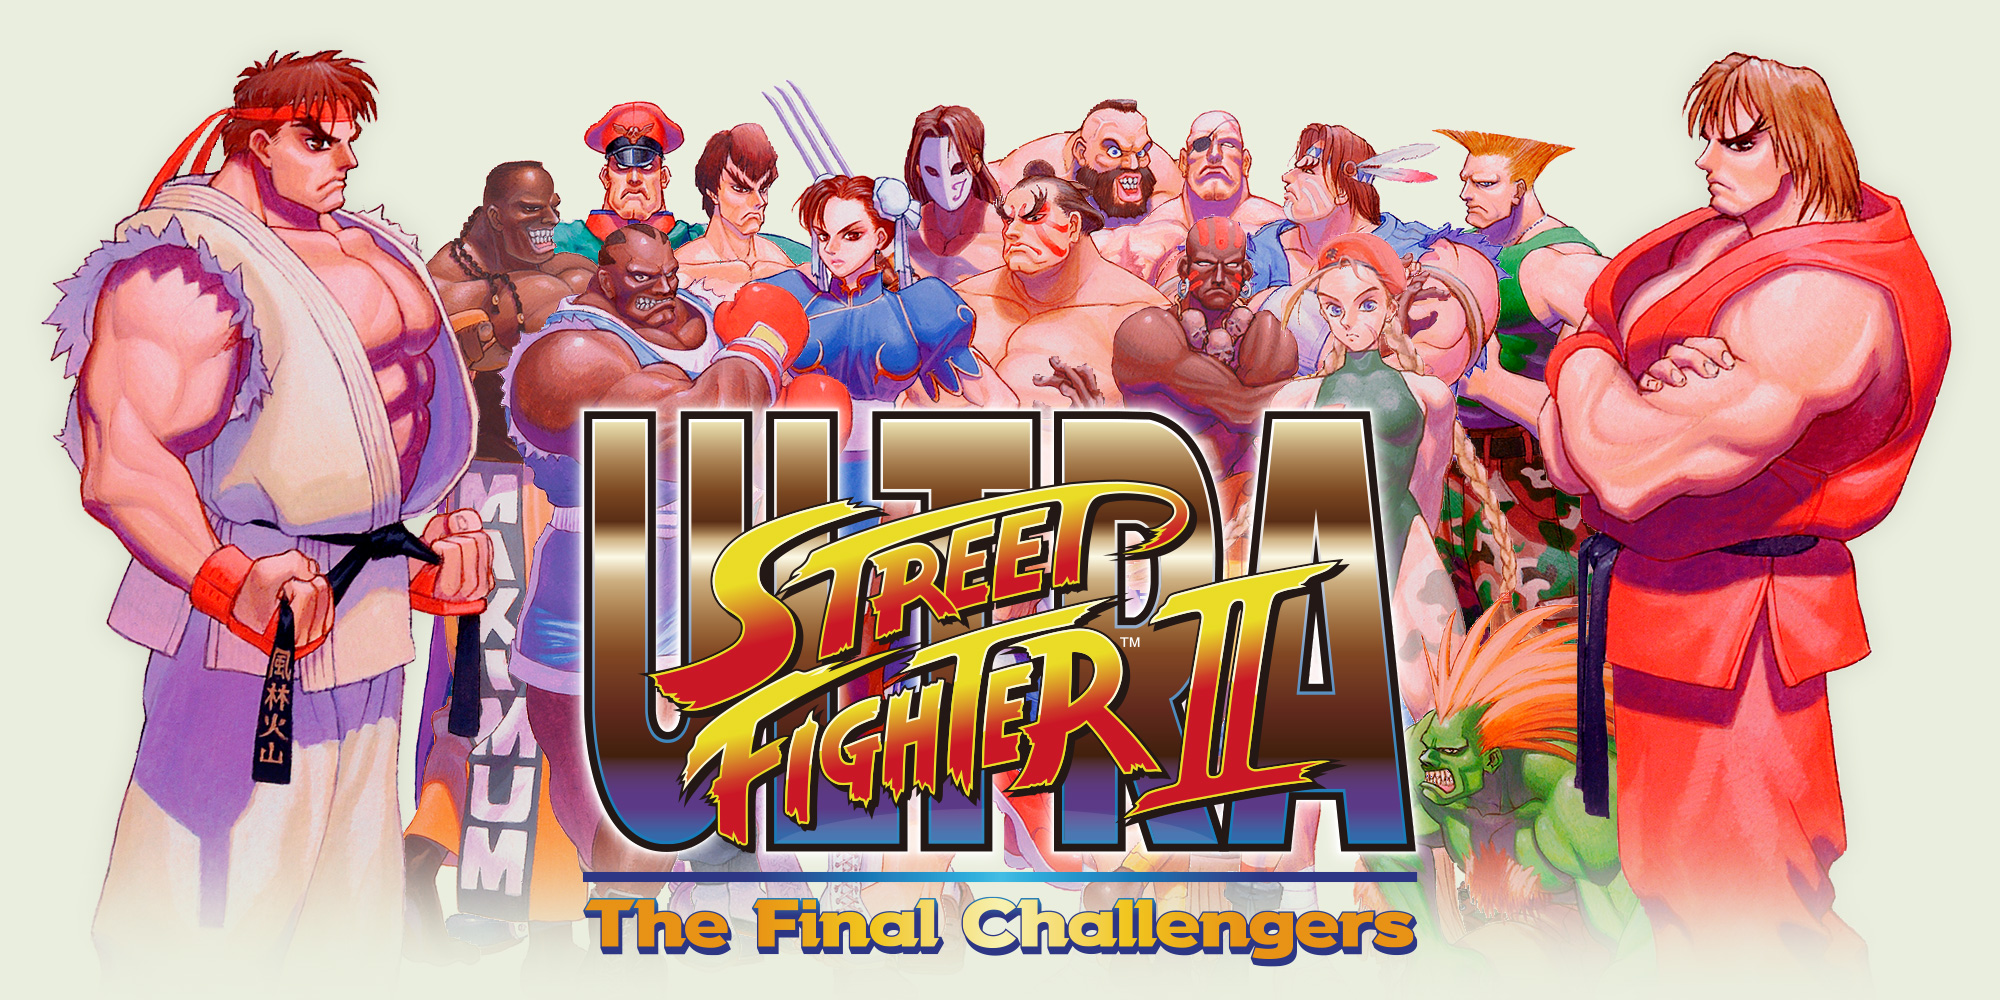 Ultra Street Fighter Ii The Final Challengers Review